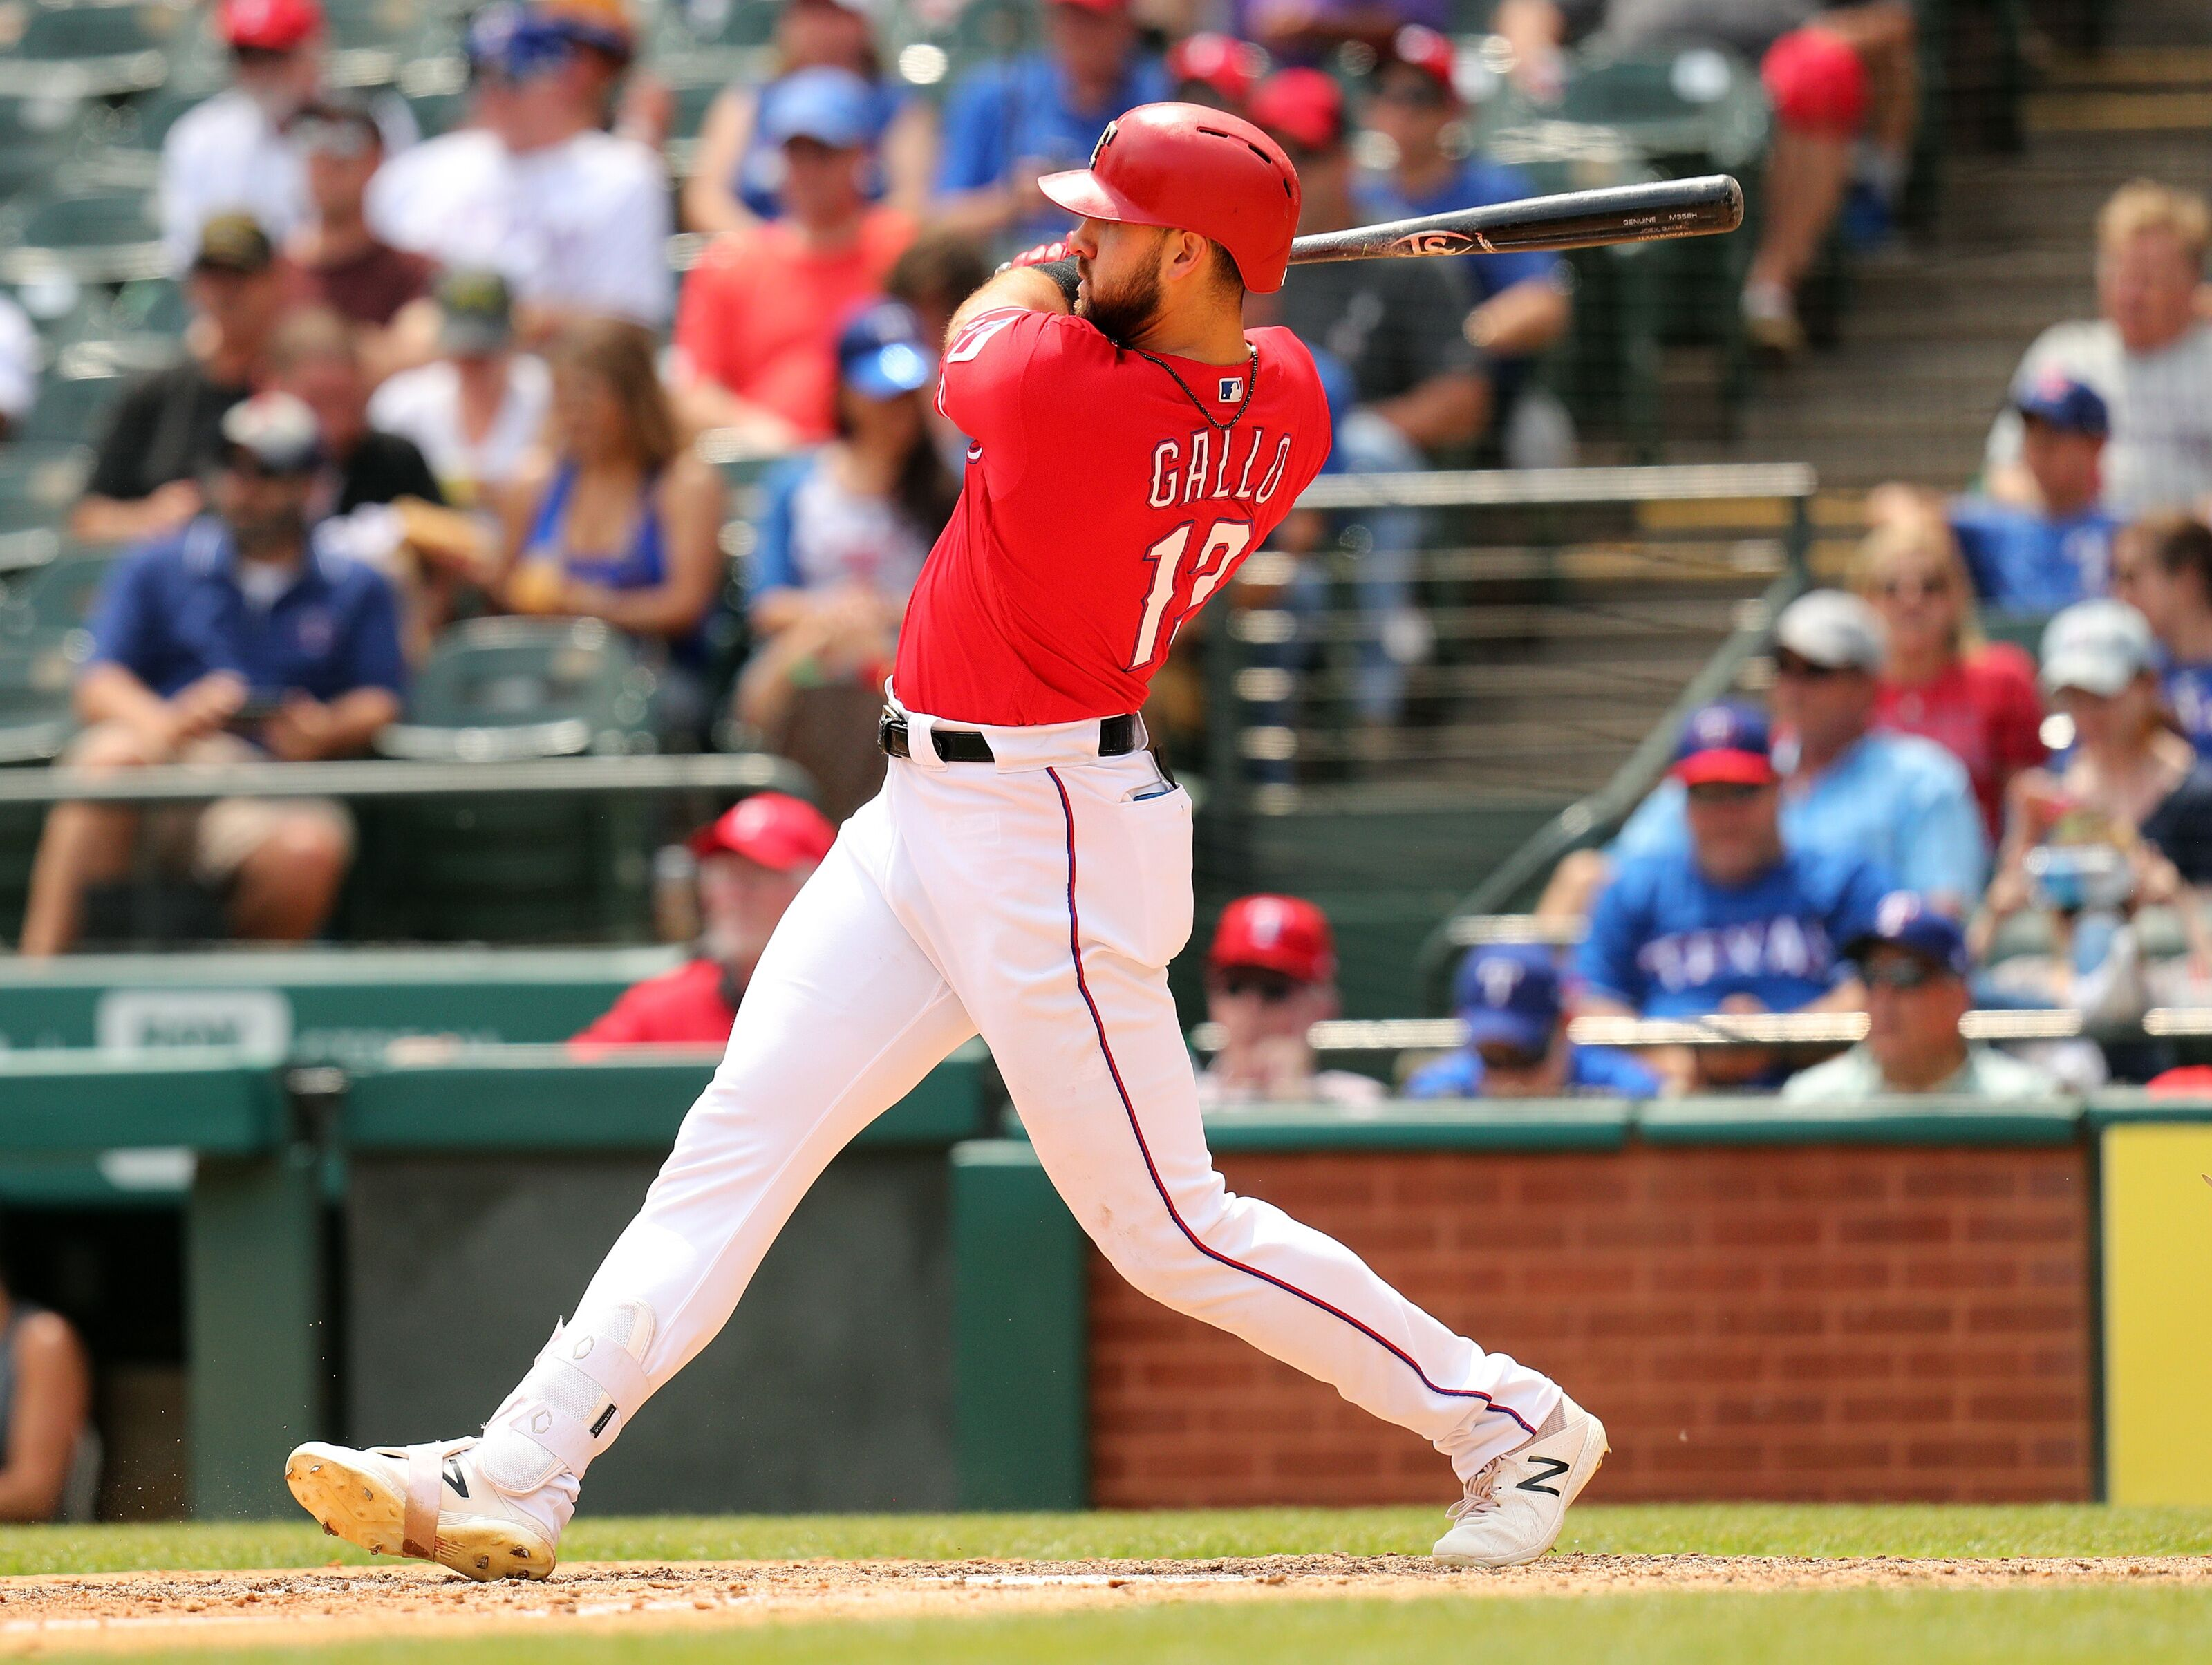 ARLINGTON, TEXAS - MAY 01: Joey Gallo #13 of the Texas Rangers hits a home run in the sixth inning against the Pittsburgh Pirates at Globe Life Park in Arlington on May 01, 2019 in Arlington, Texas. (Photo by Richard Rodriguez/Getty Images)